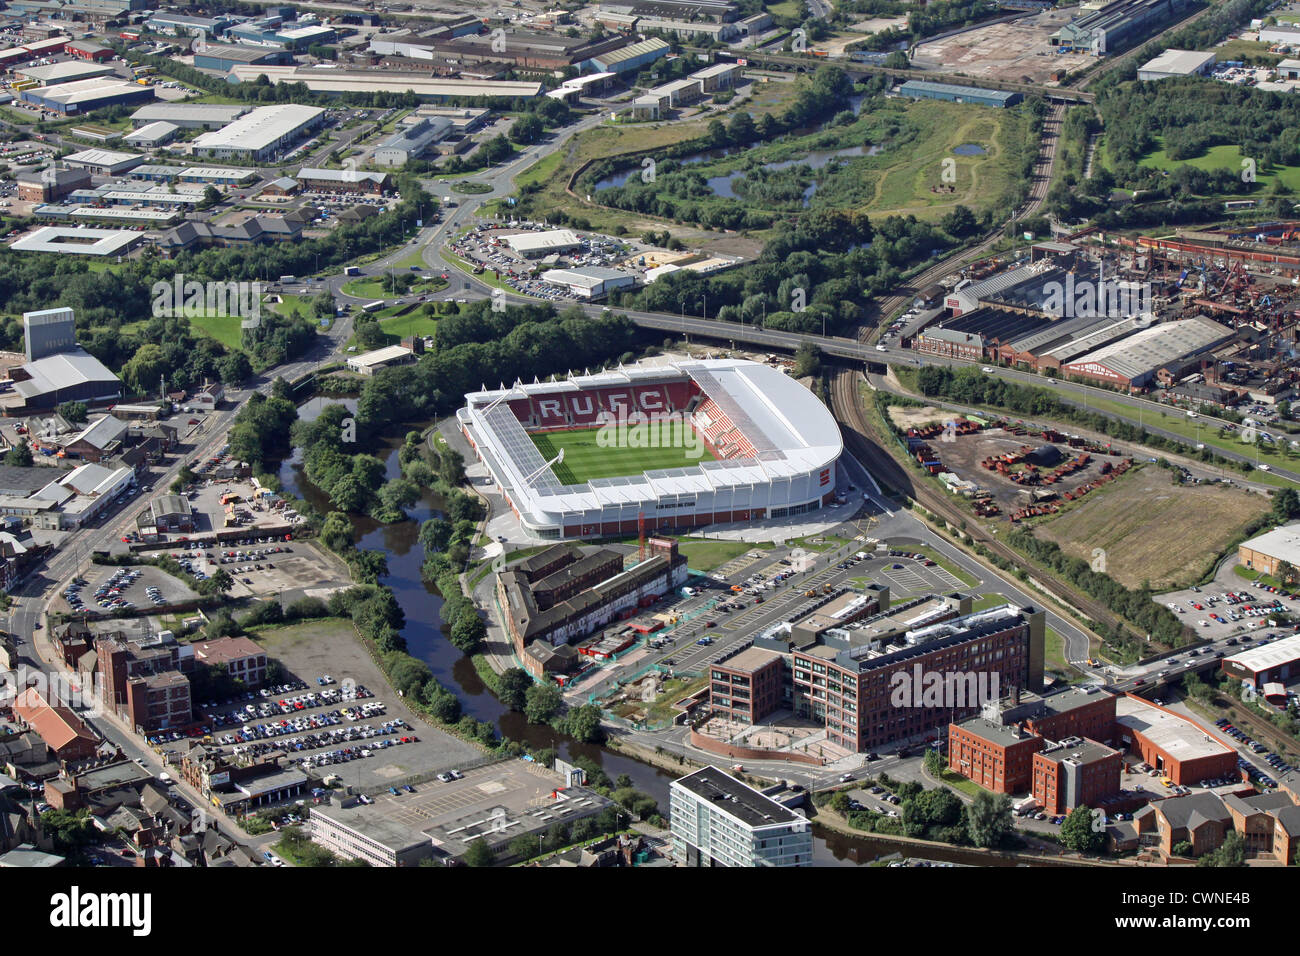 Vista aérea de Rotherham United Football Club, South Yorkshire Imagen De Stock